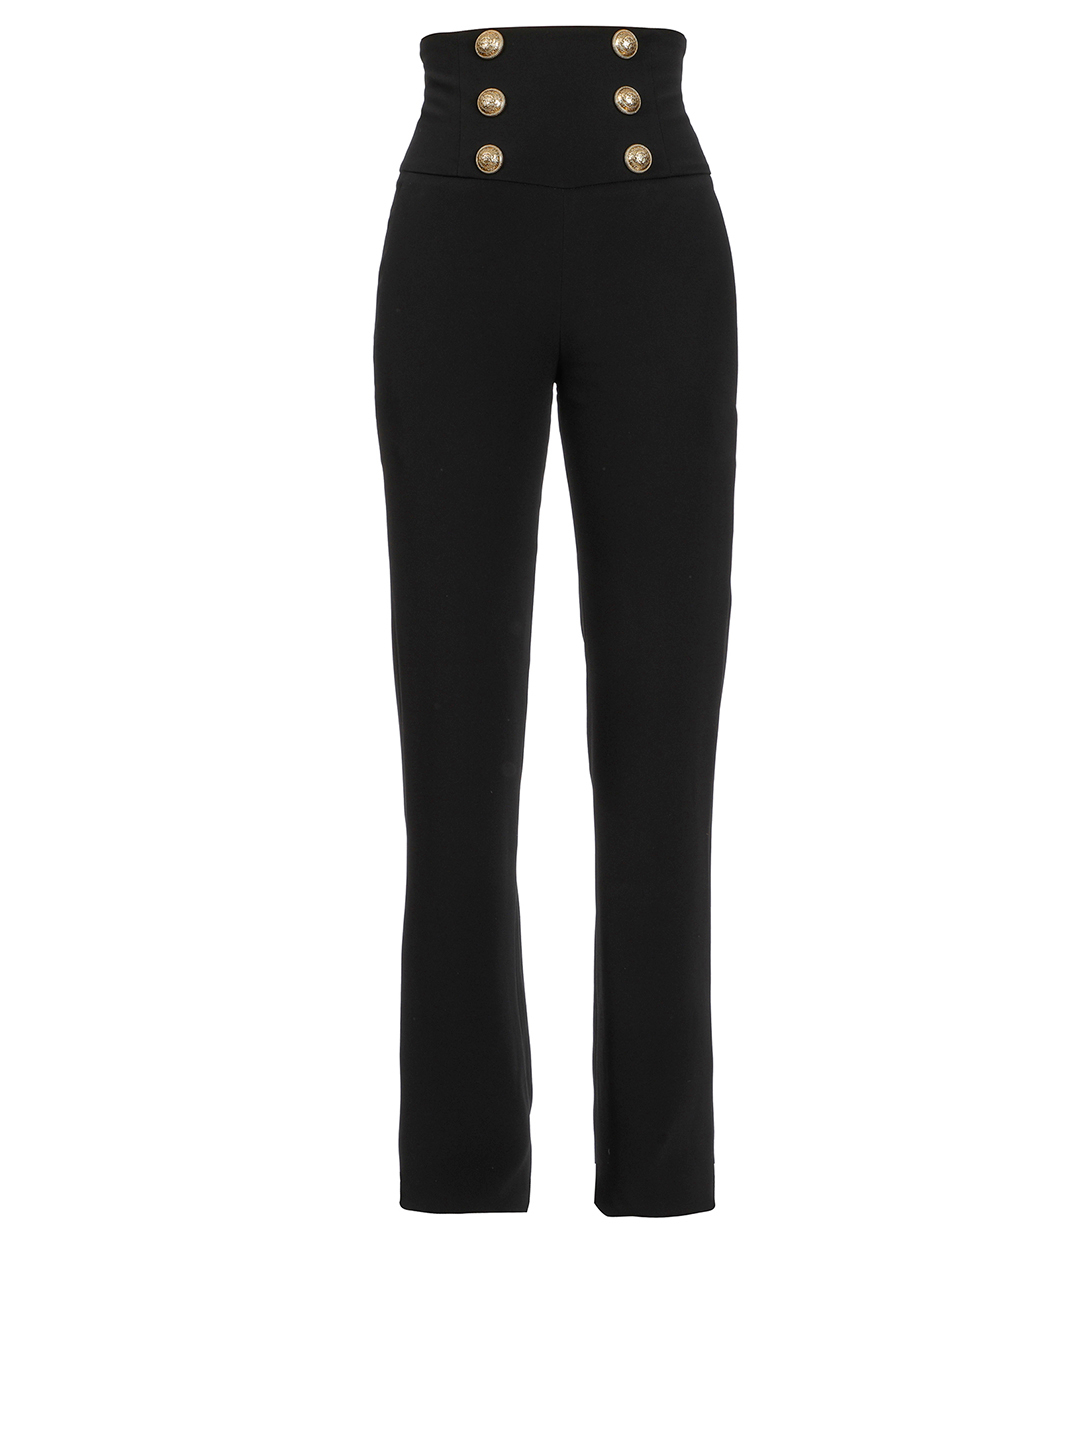 BALMAIN Corset Wide-Leg Pants Women's Black